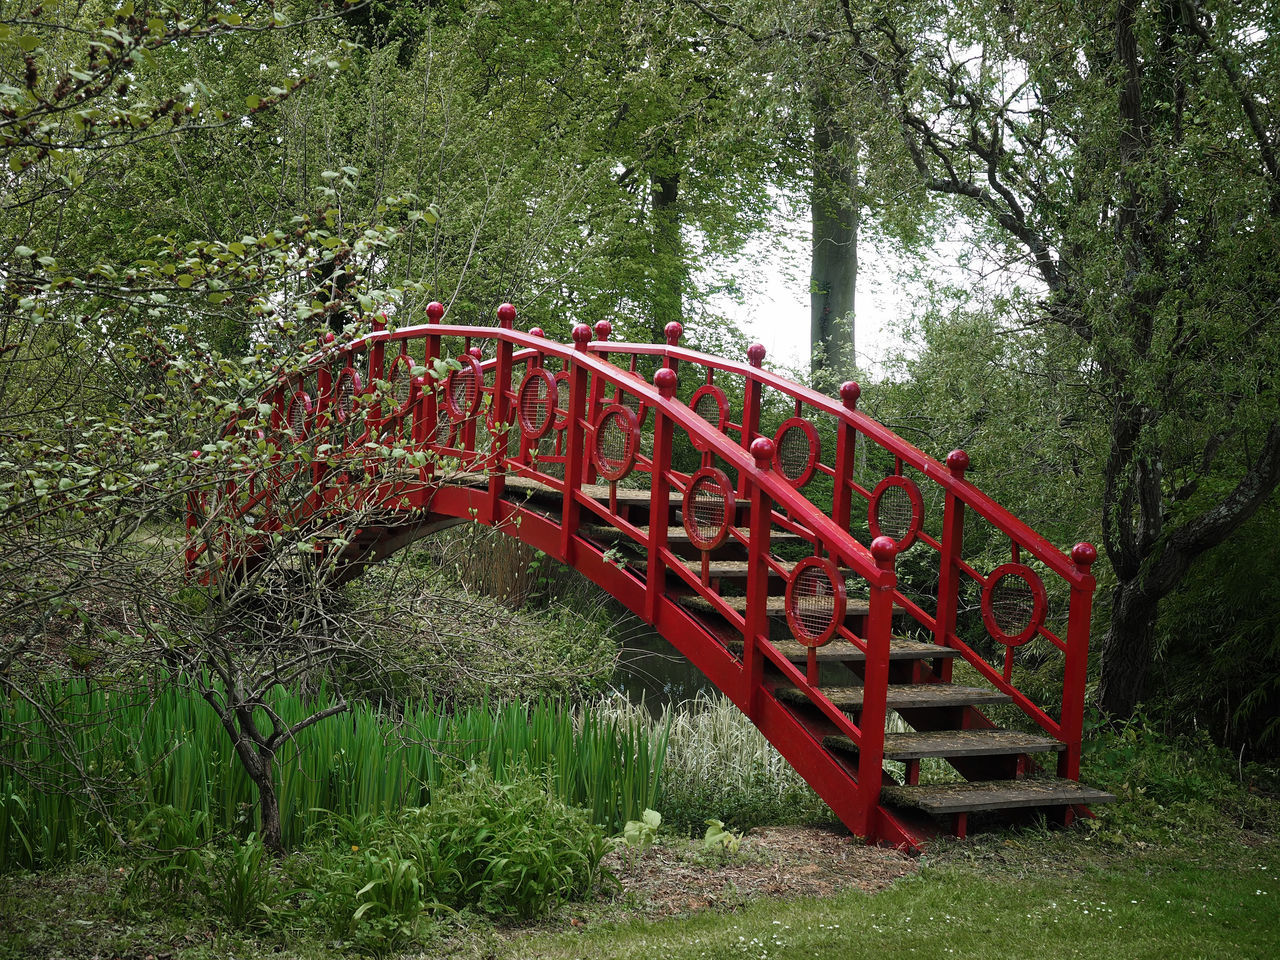 Red Japanese Bridge - Thenford House. Japanese Bridge Beauty In Nature Bridge Bridgeproject Landscape Nature Olympus Images Outdoors Park - Man Made Space Red Thenford House Tree